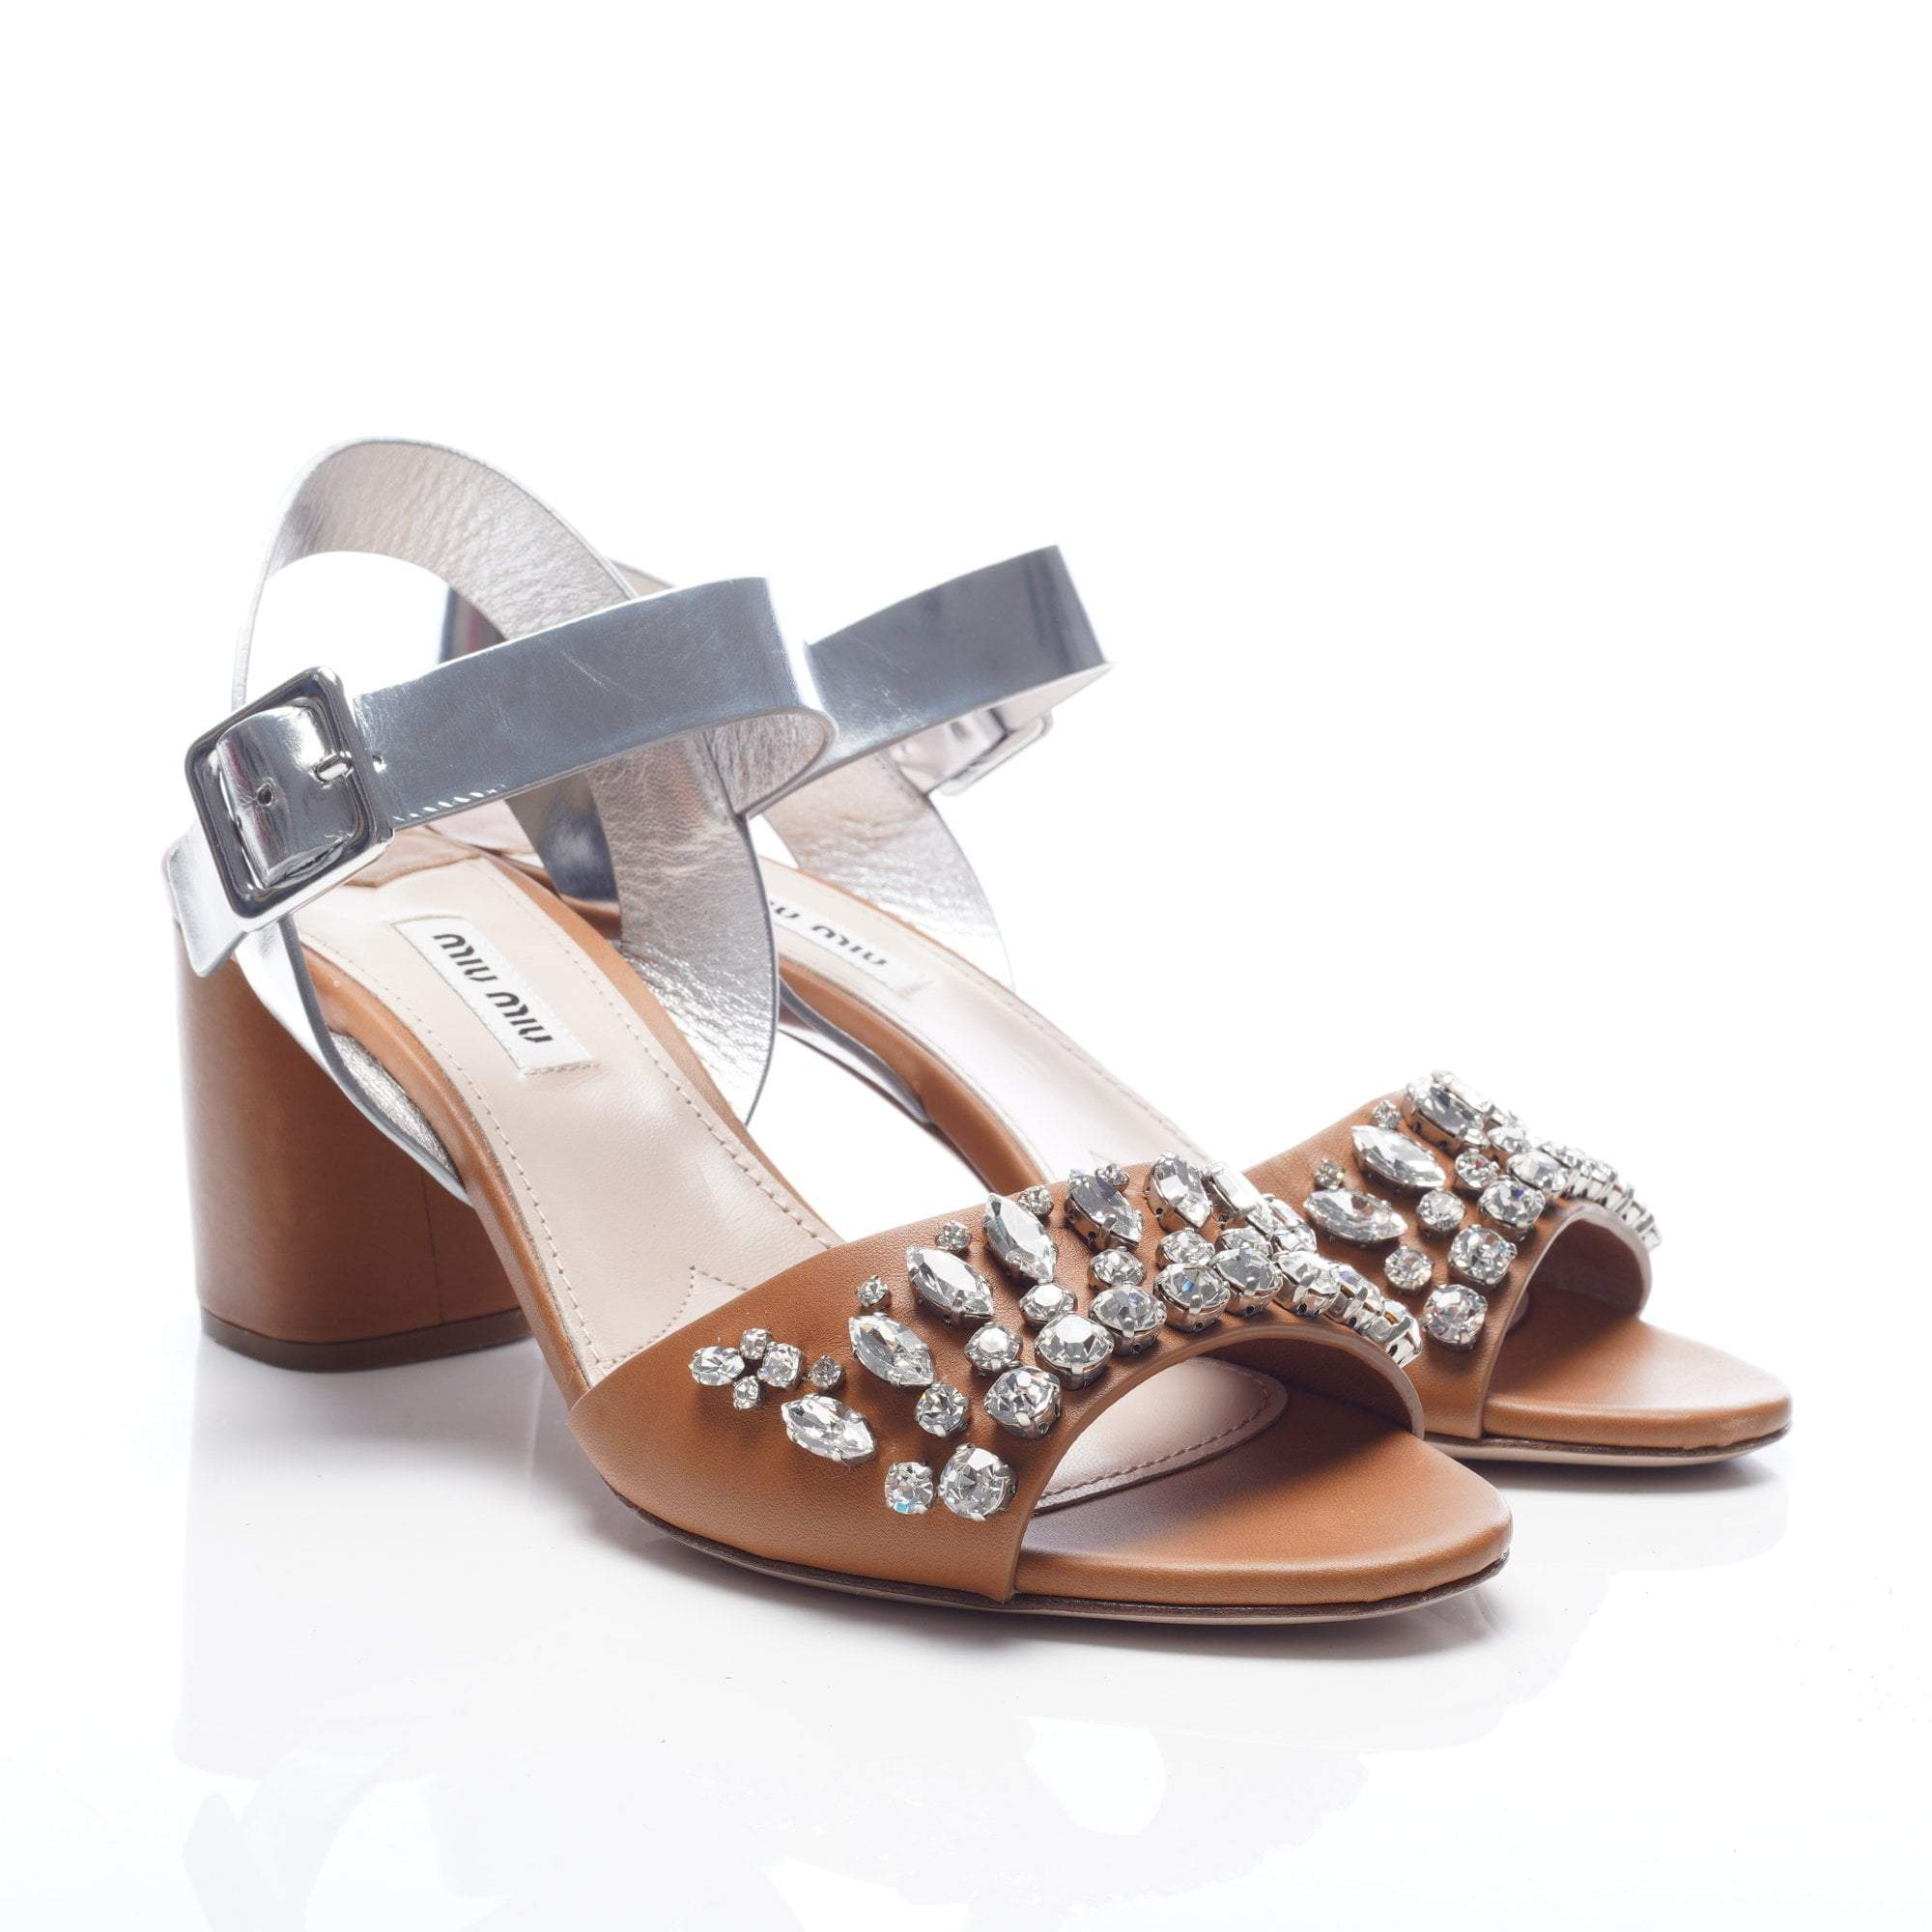 Miu Miu Brown and Silver Crystal Leather City Sandal